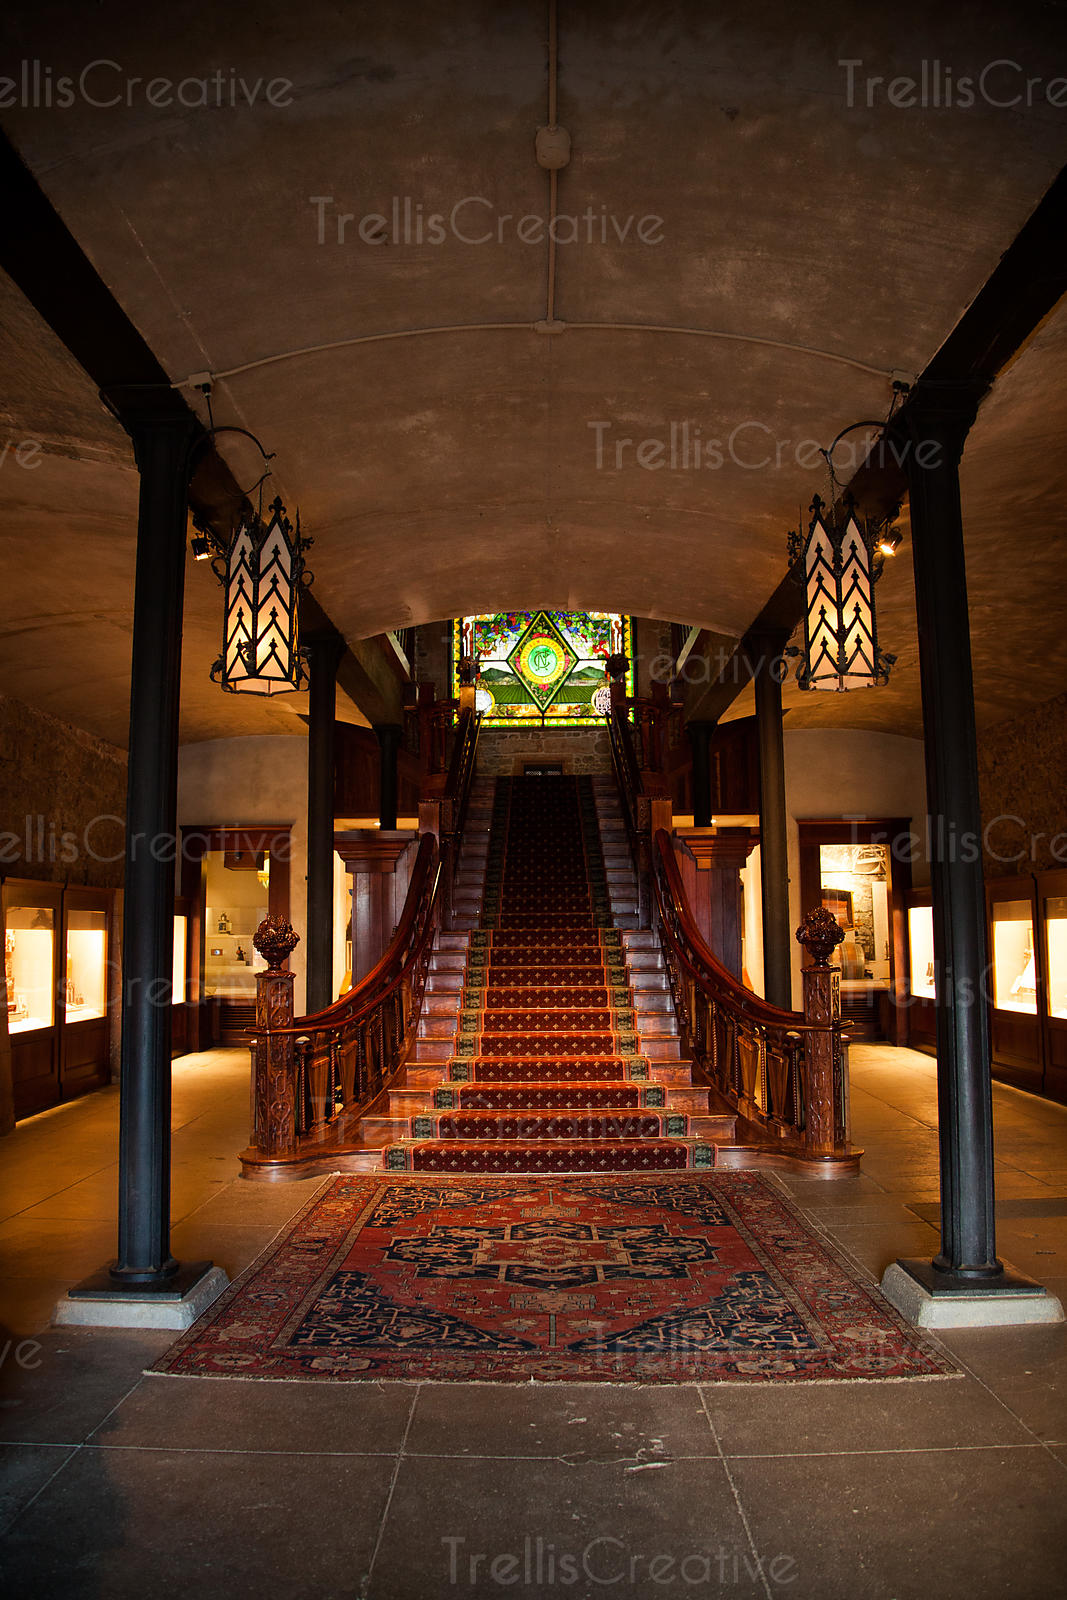 Grand staircase at the entrance to the historic Inglenook winery in Rutherford, Napa Valley